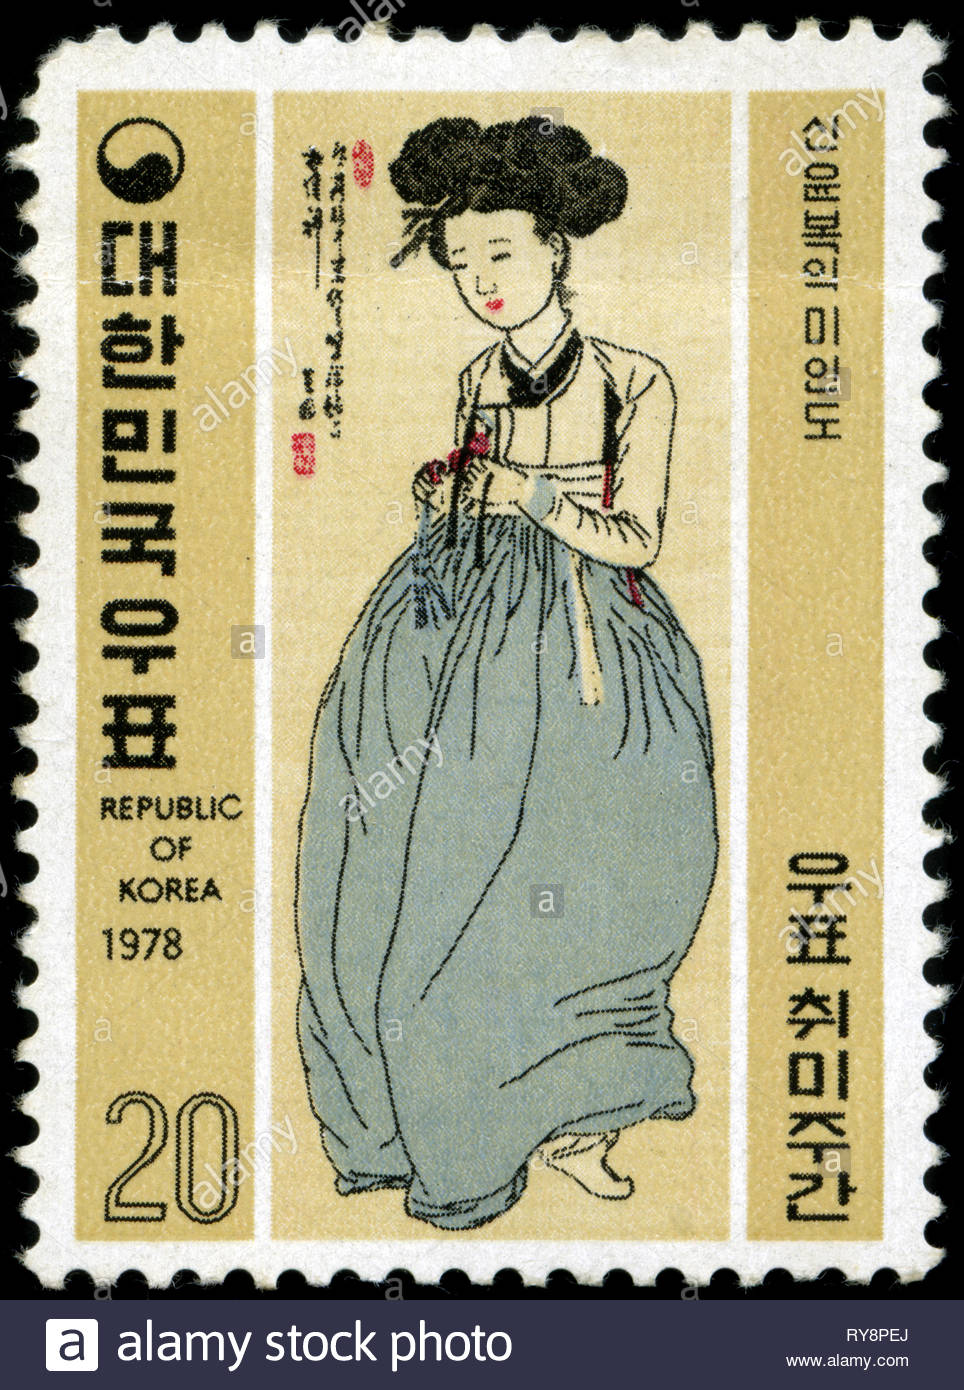 Postage stamp from South Korea in the Philatelic Week series issued in 1978 - Stock Image